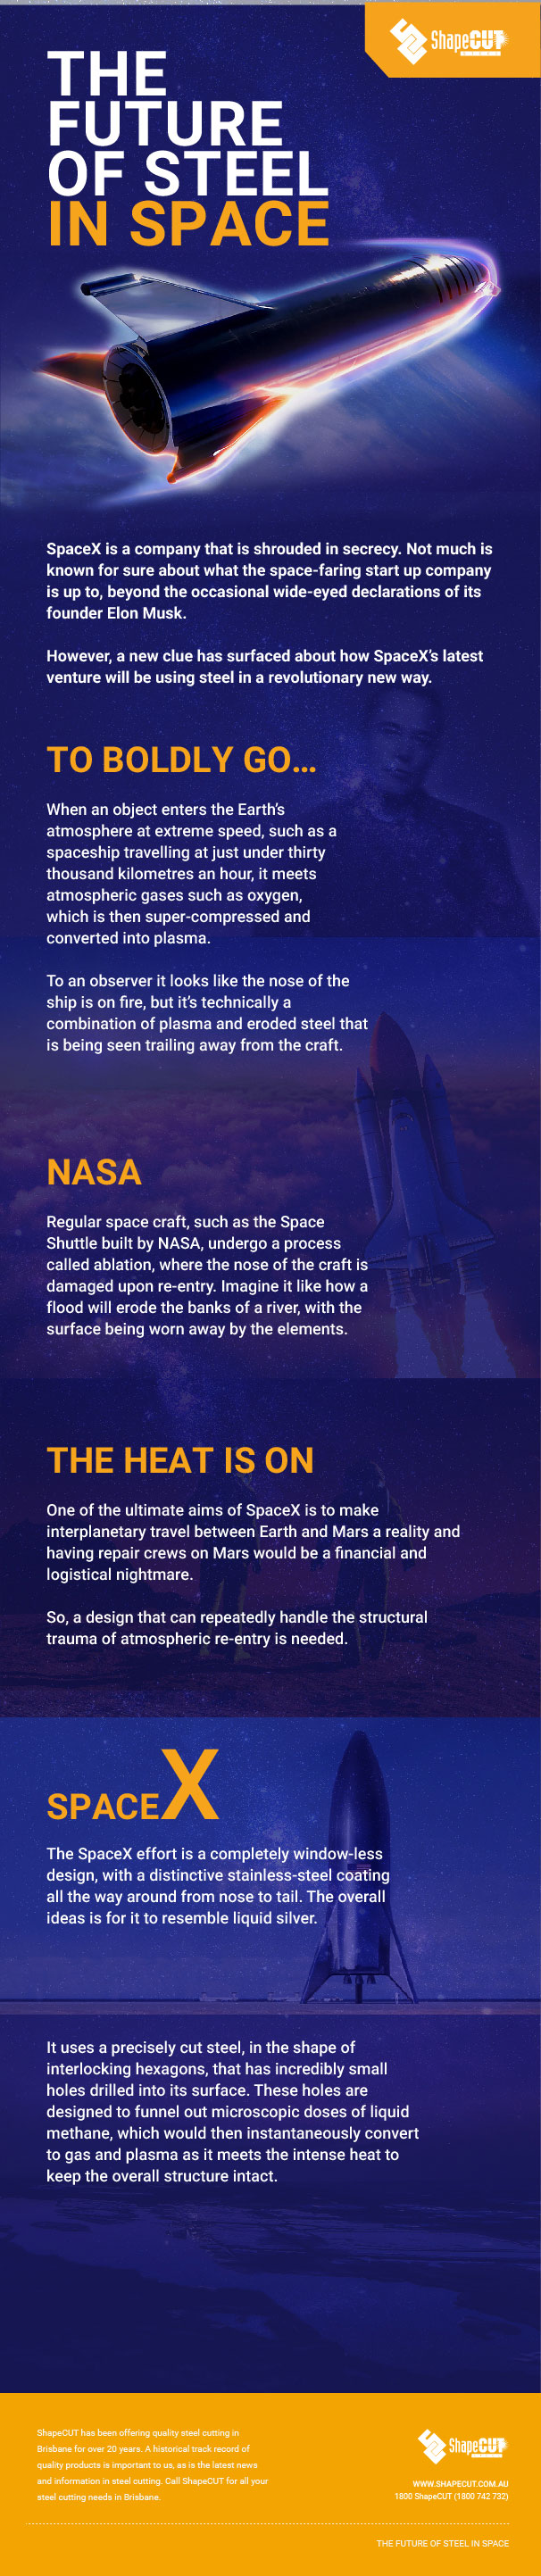 steel in space infographic